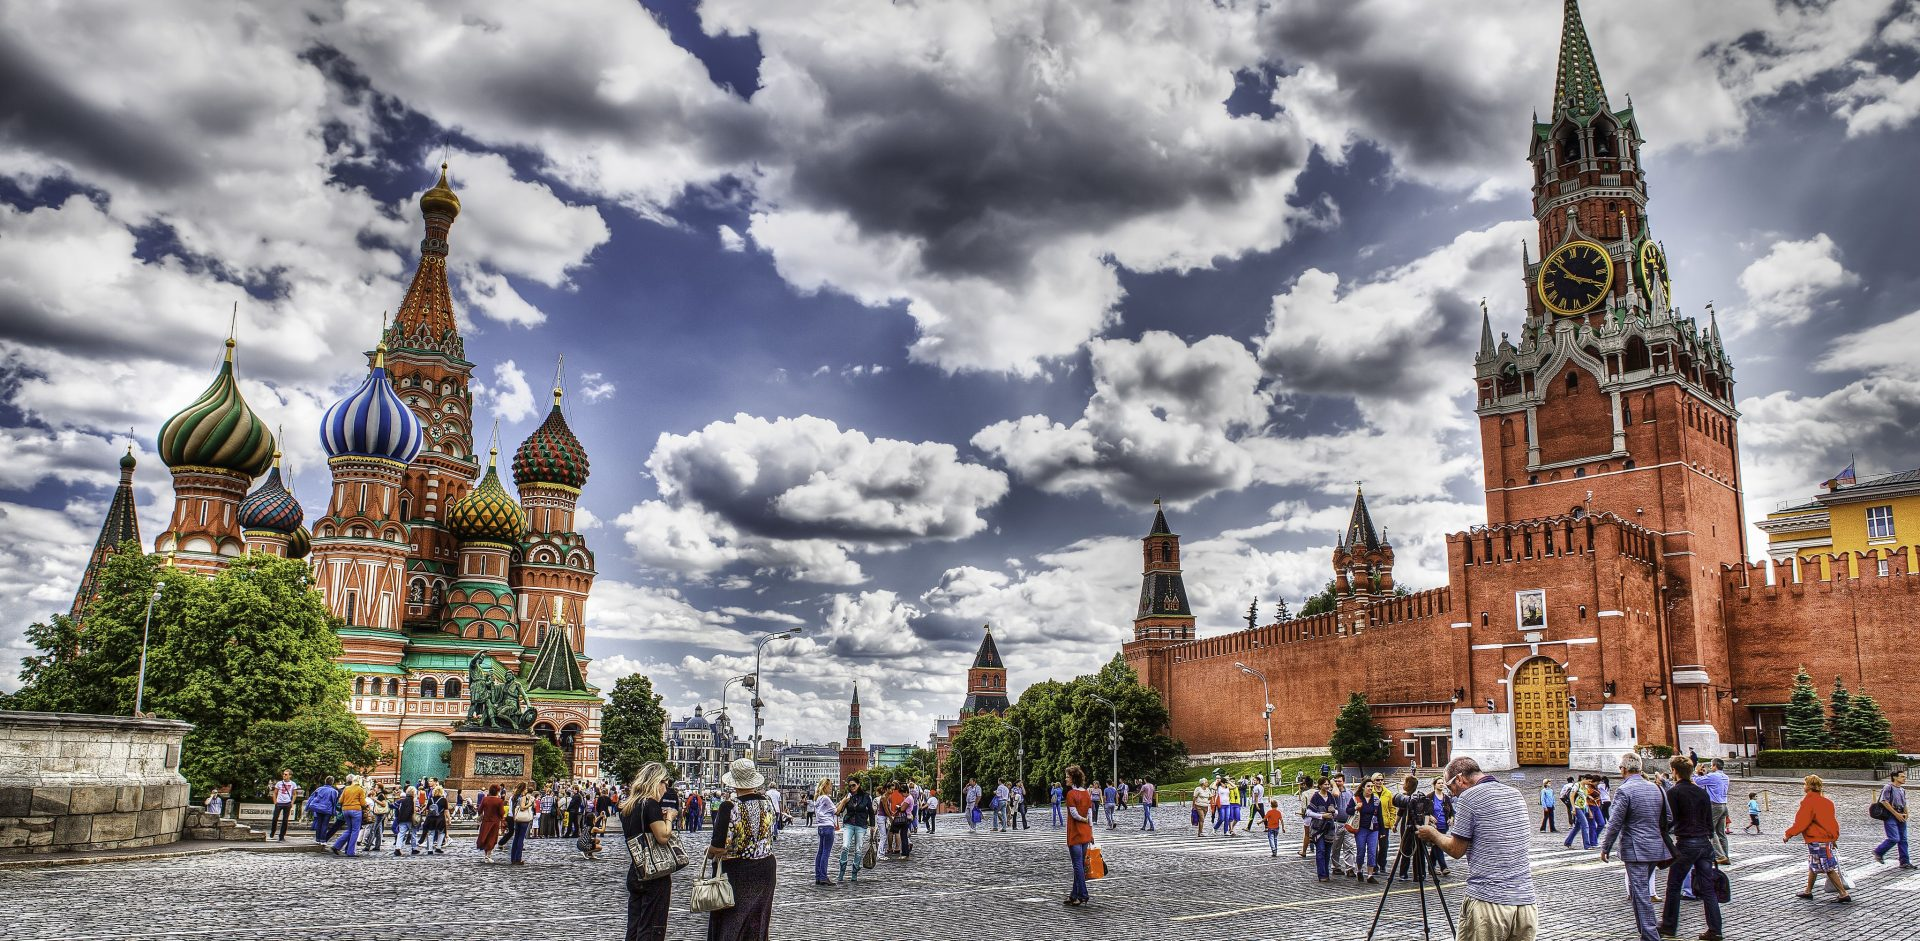 Red square Moscow city scape by ValeriJ Tkačenko/Creative Comonns 2.0